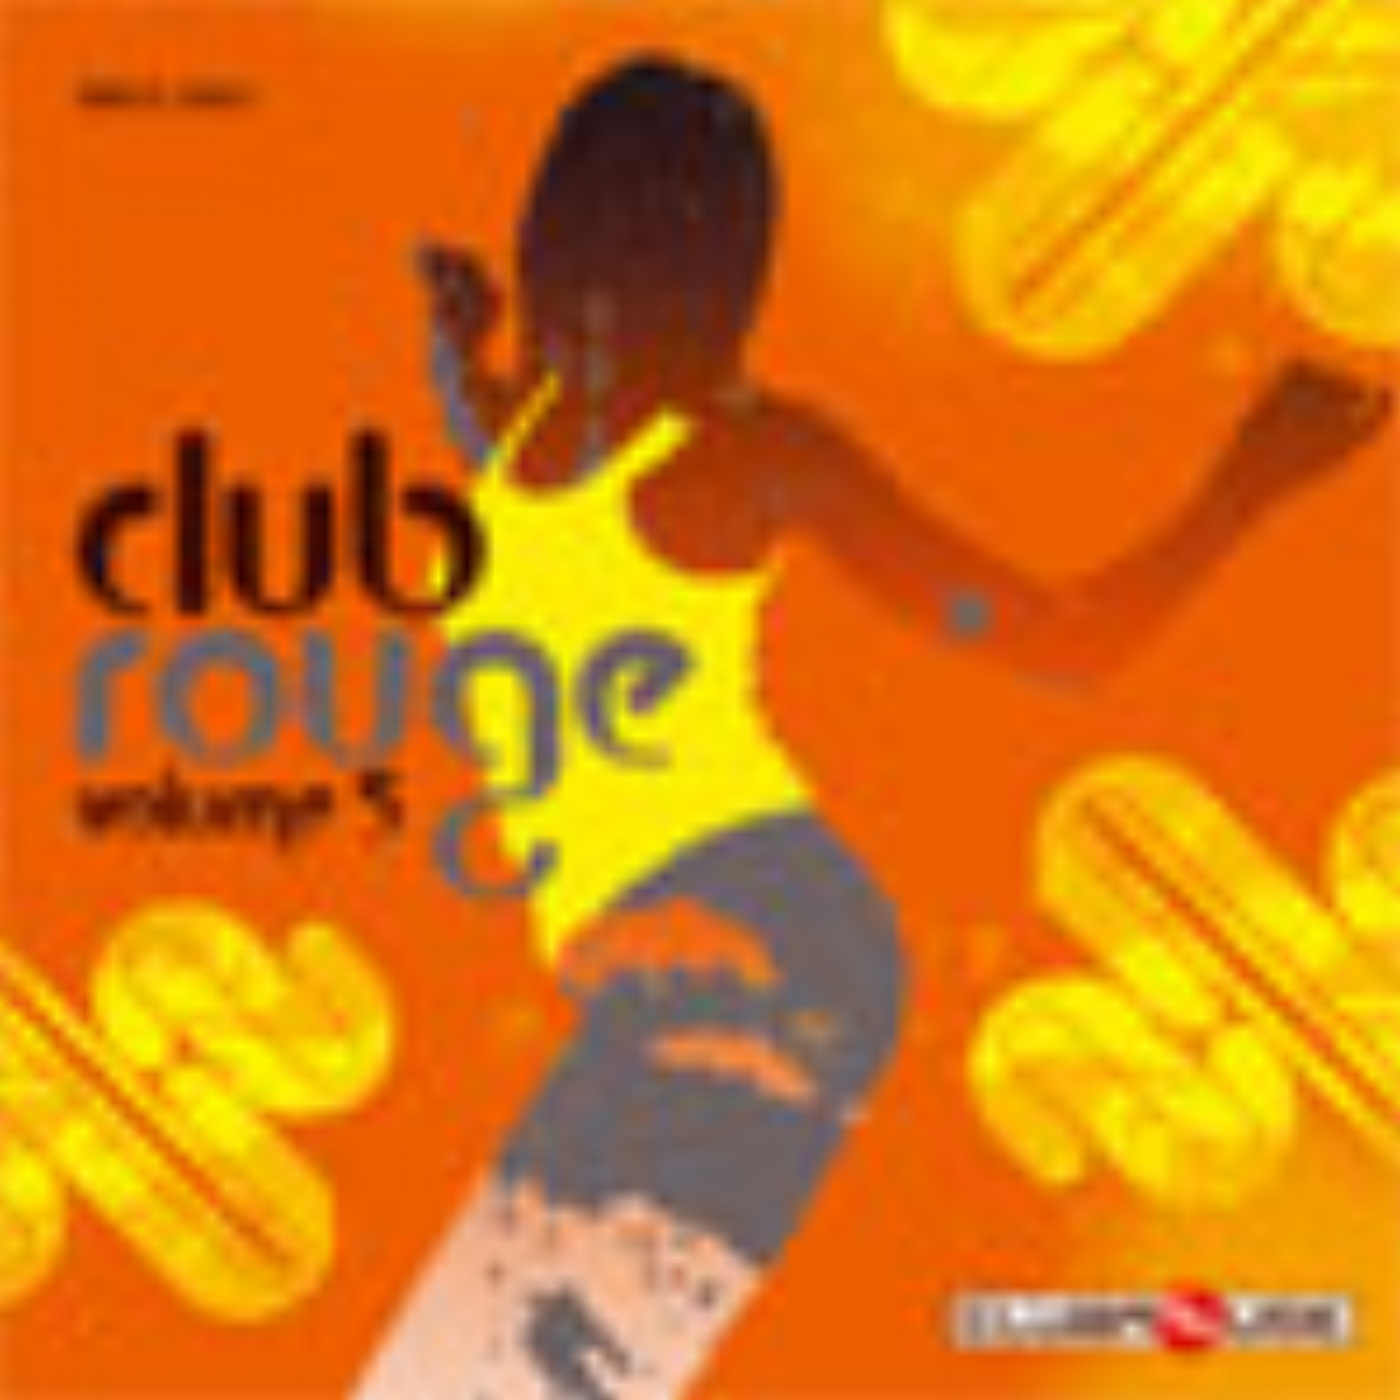 Levan J and Tori    Club Rouge  Dewolfe library music CD released 2008..